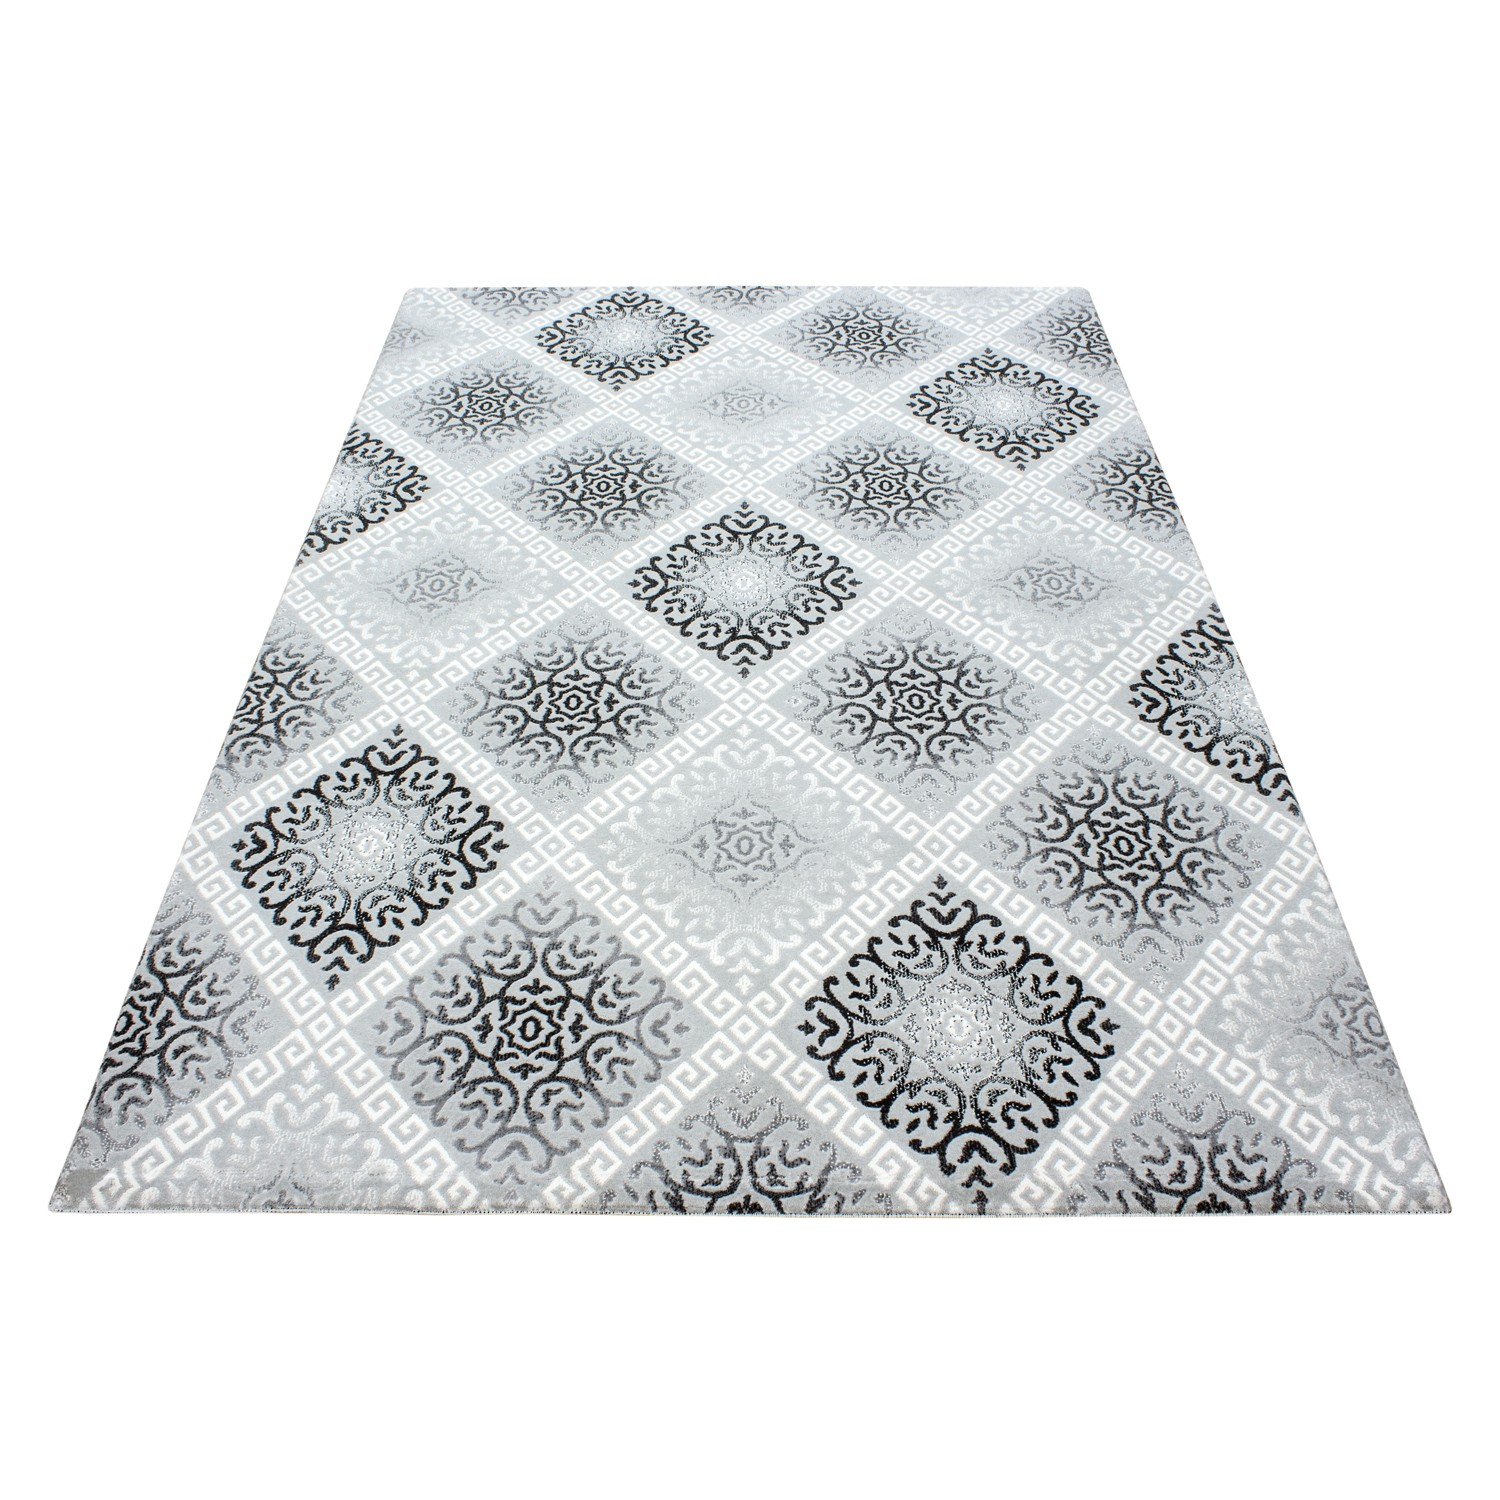 Grand Tapis Gris Pas Cher Grand Tapis De Salon Maison Design Wiblia